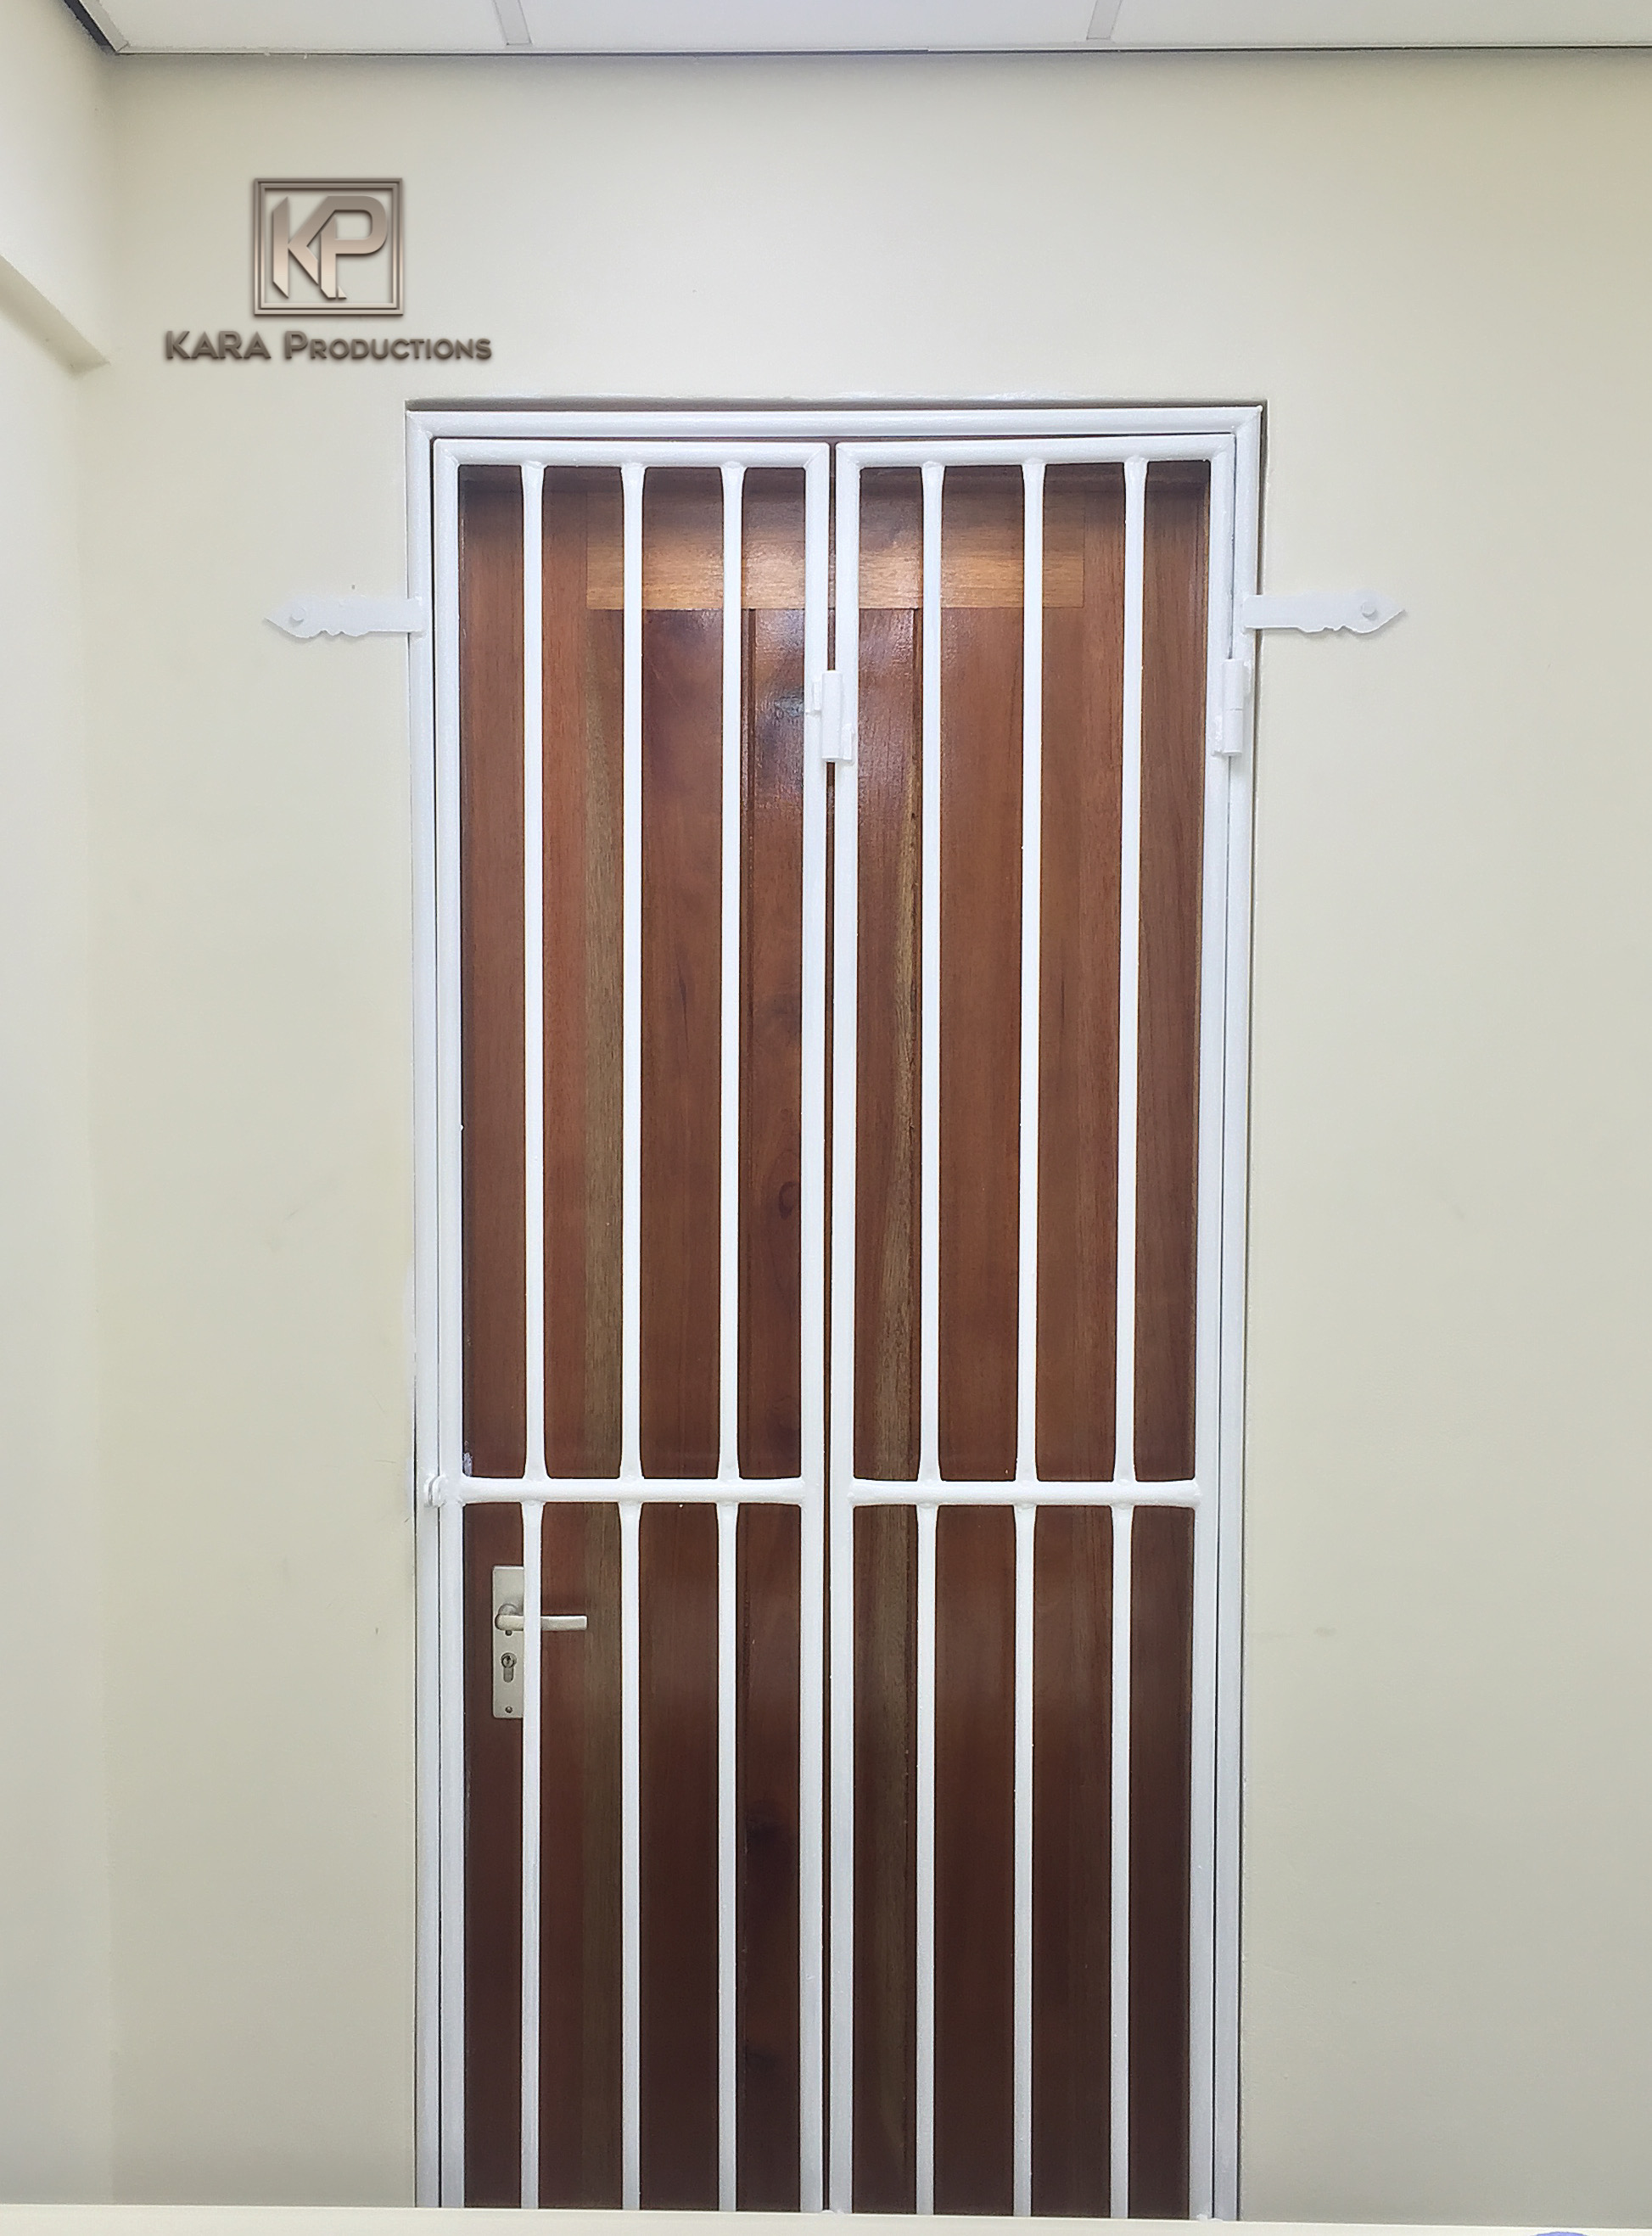 Vertical bar pedestian gates